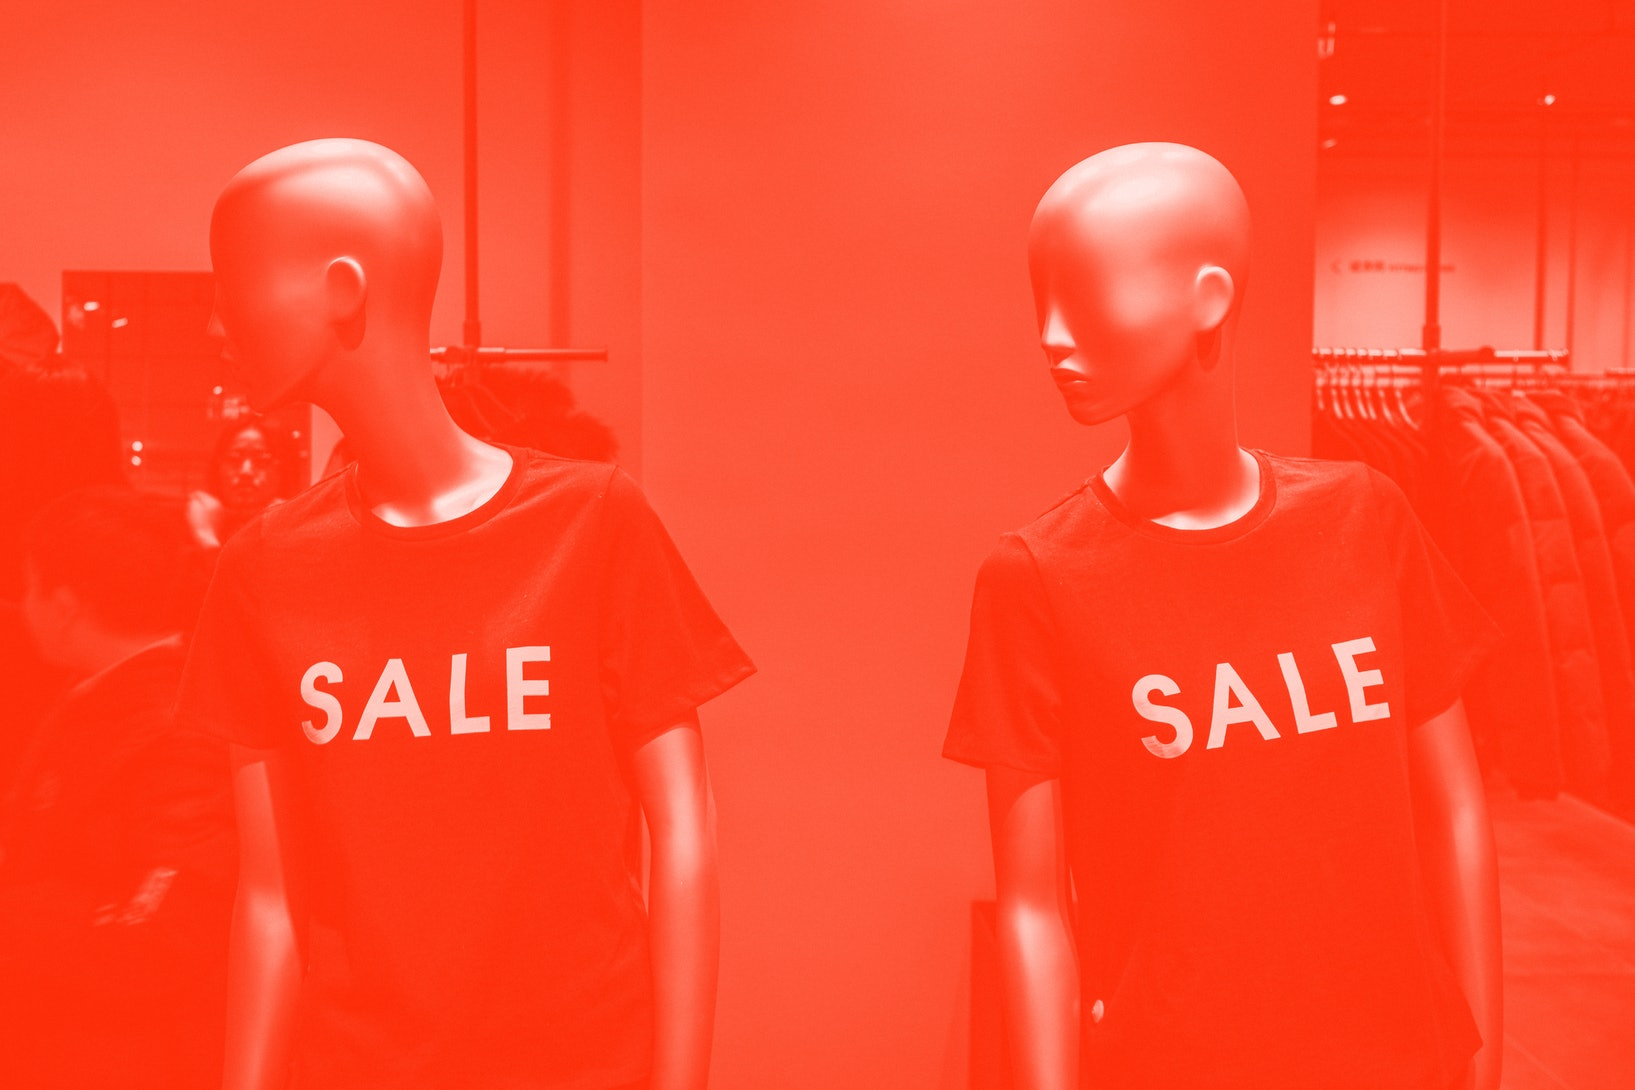 """Two mannequins are positioned side by side, wearing T-shirts that read """"SALE."""""""